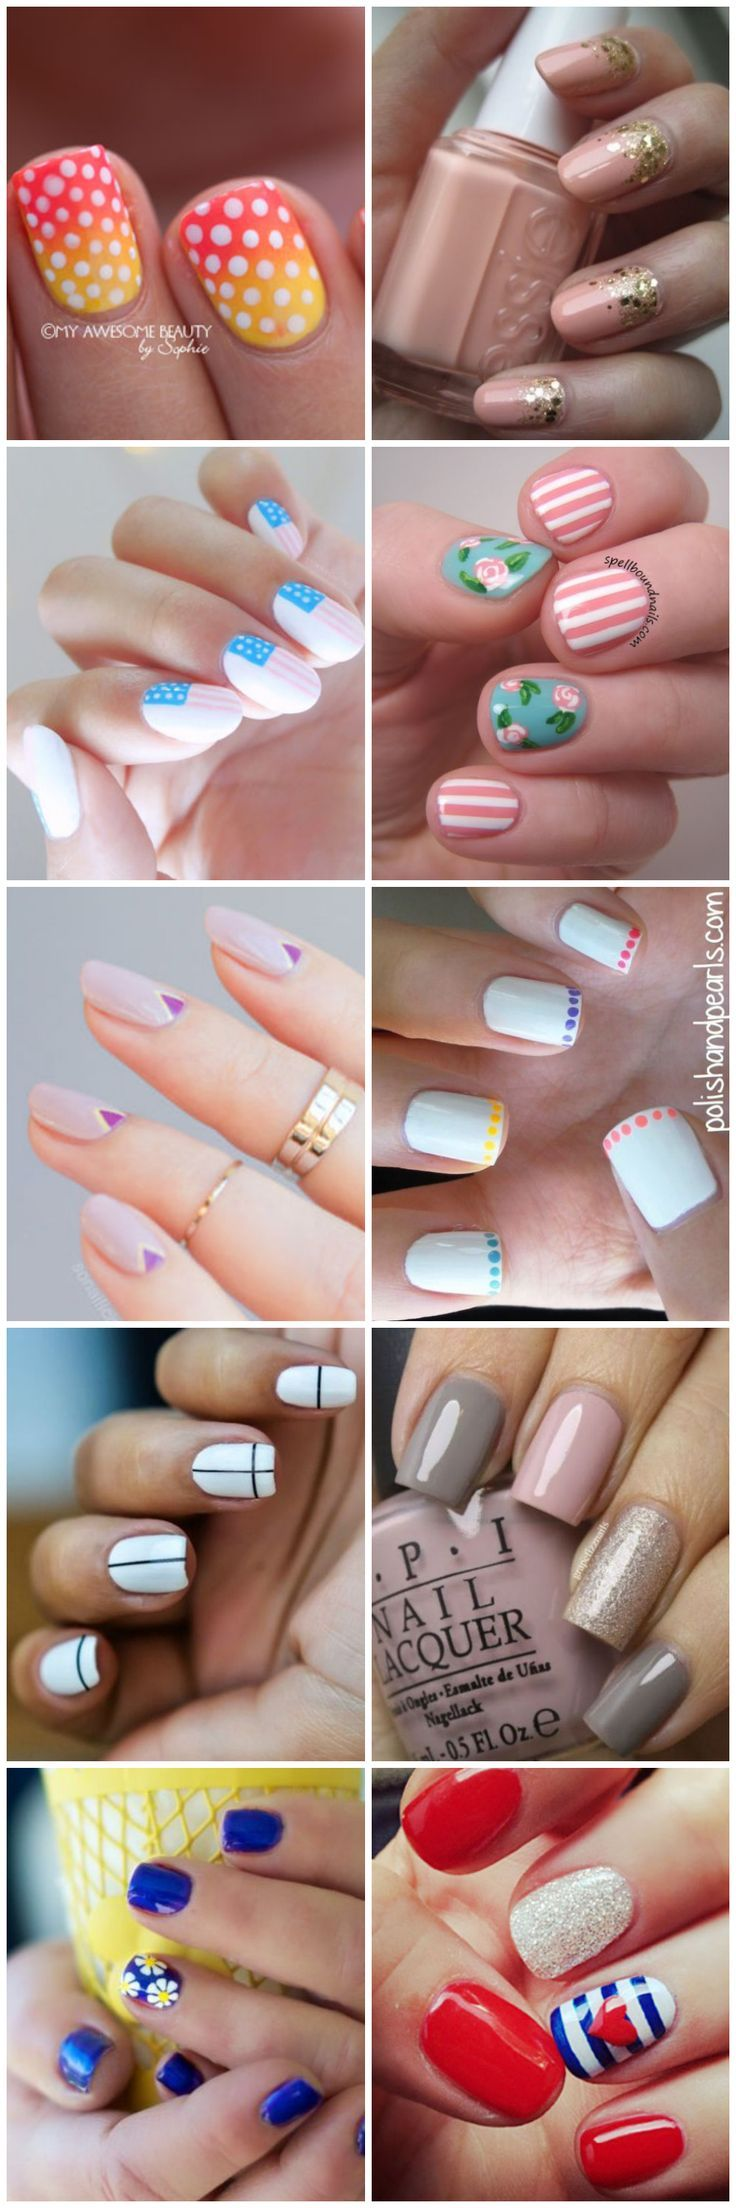 Easy Nail Art for Your Next Manicure